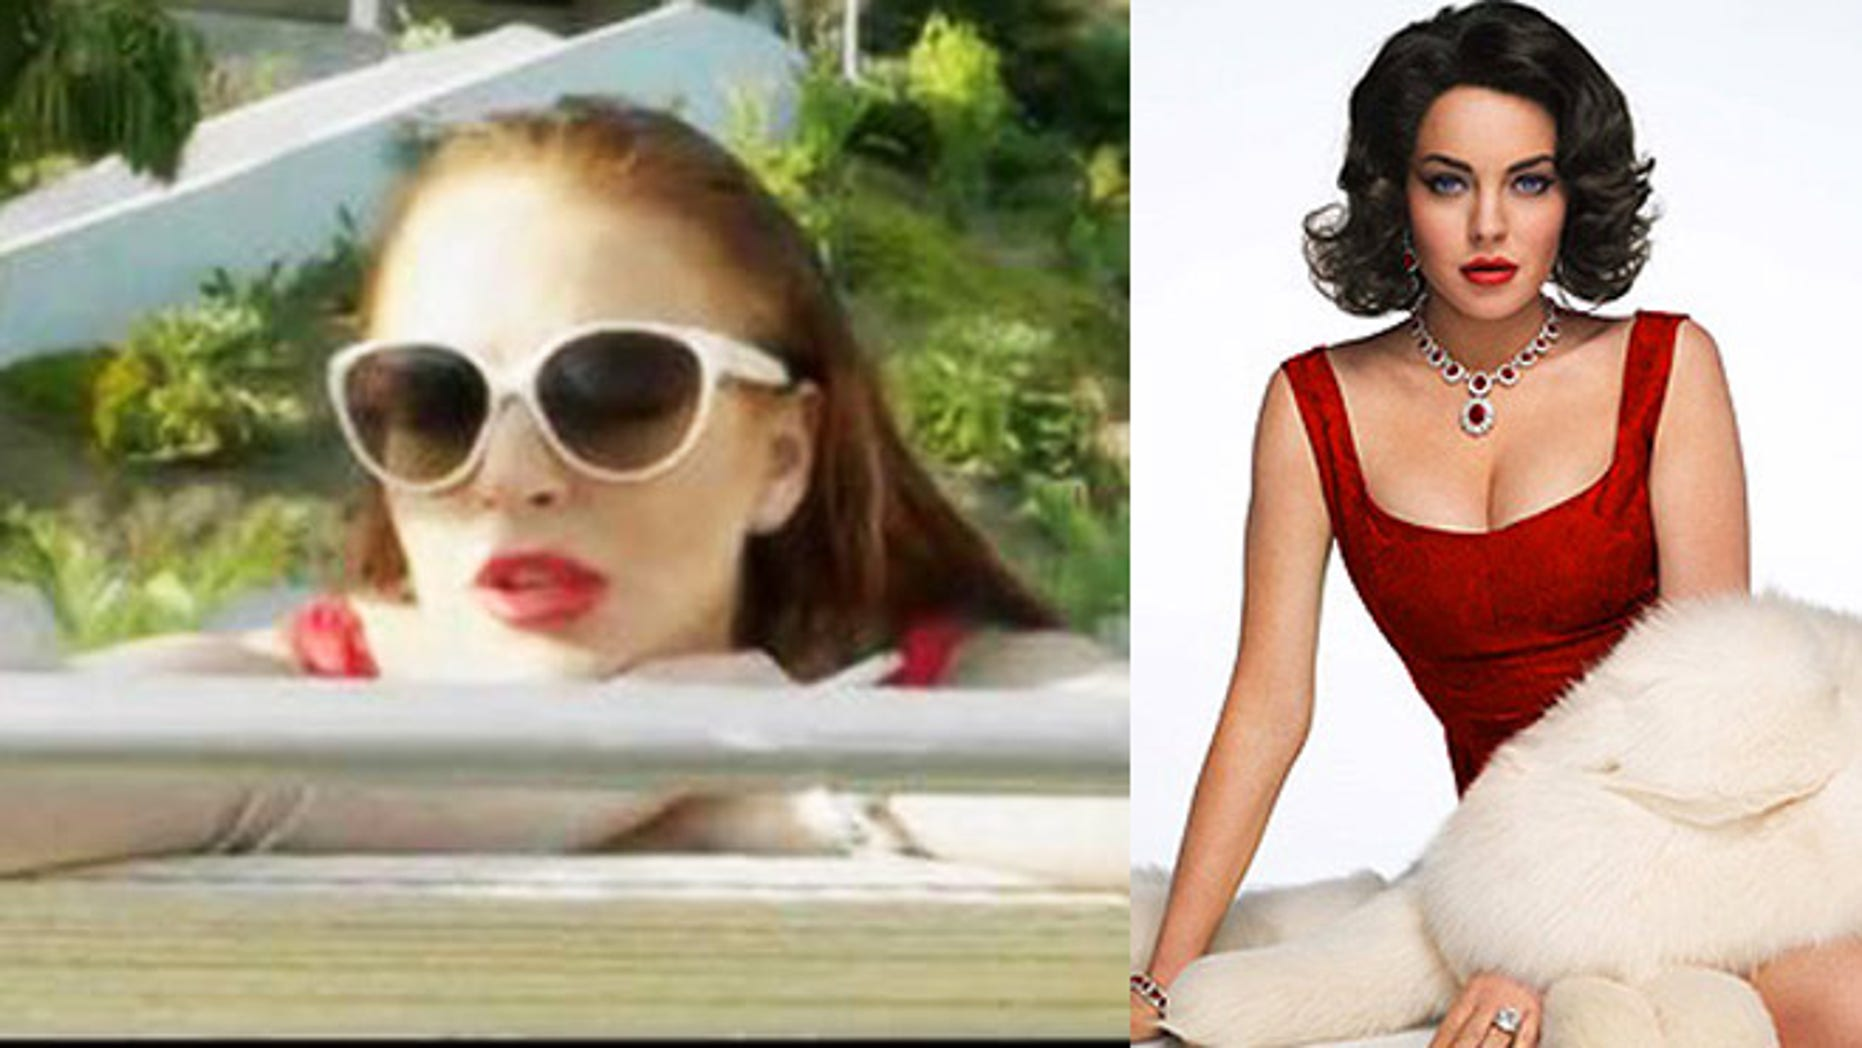 Lohan has two films coming out, the low-budget Canyons (left) and the Lifetime movie 'Liz & Dick' (right).